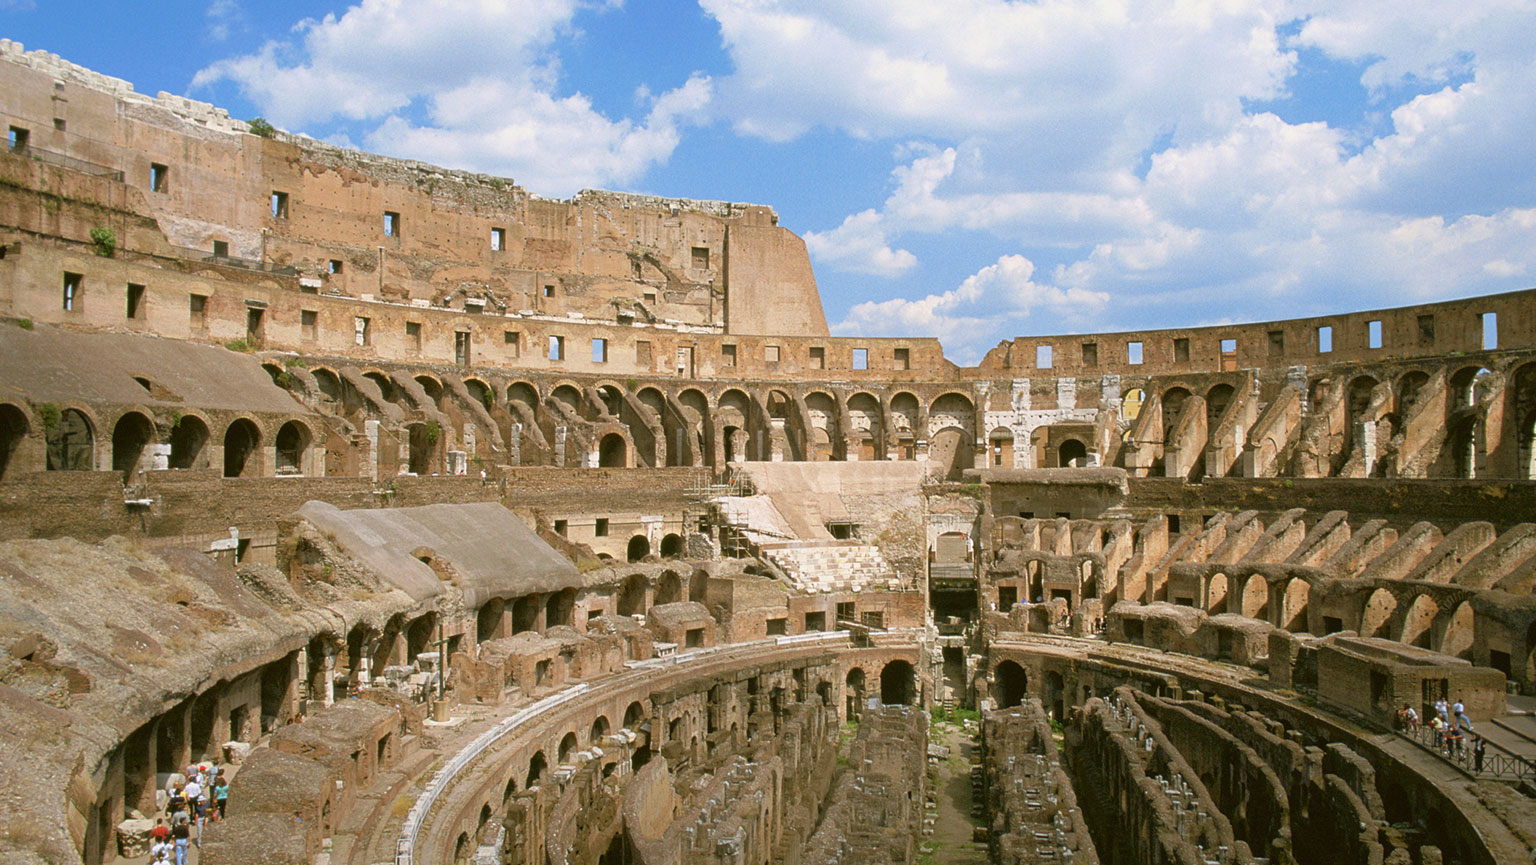 Construction in Transition—The Colosseum